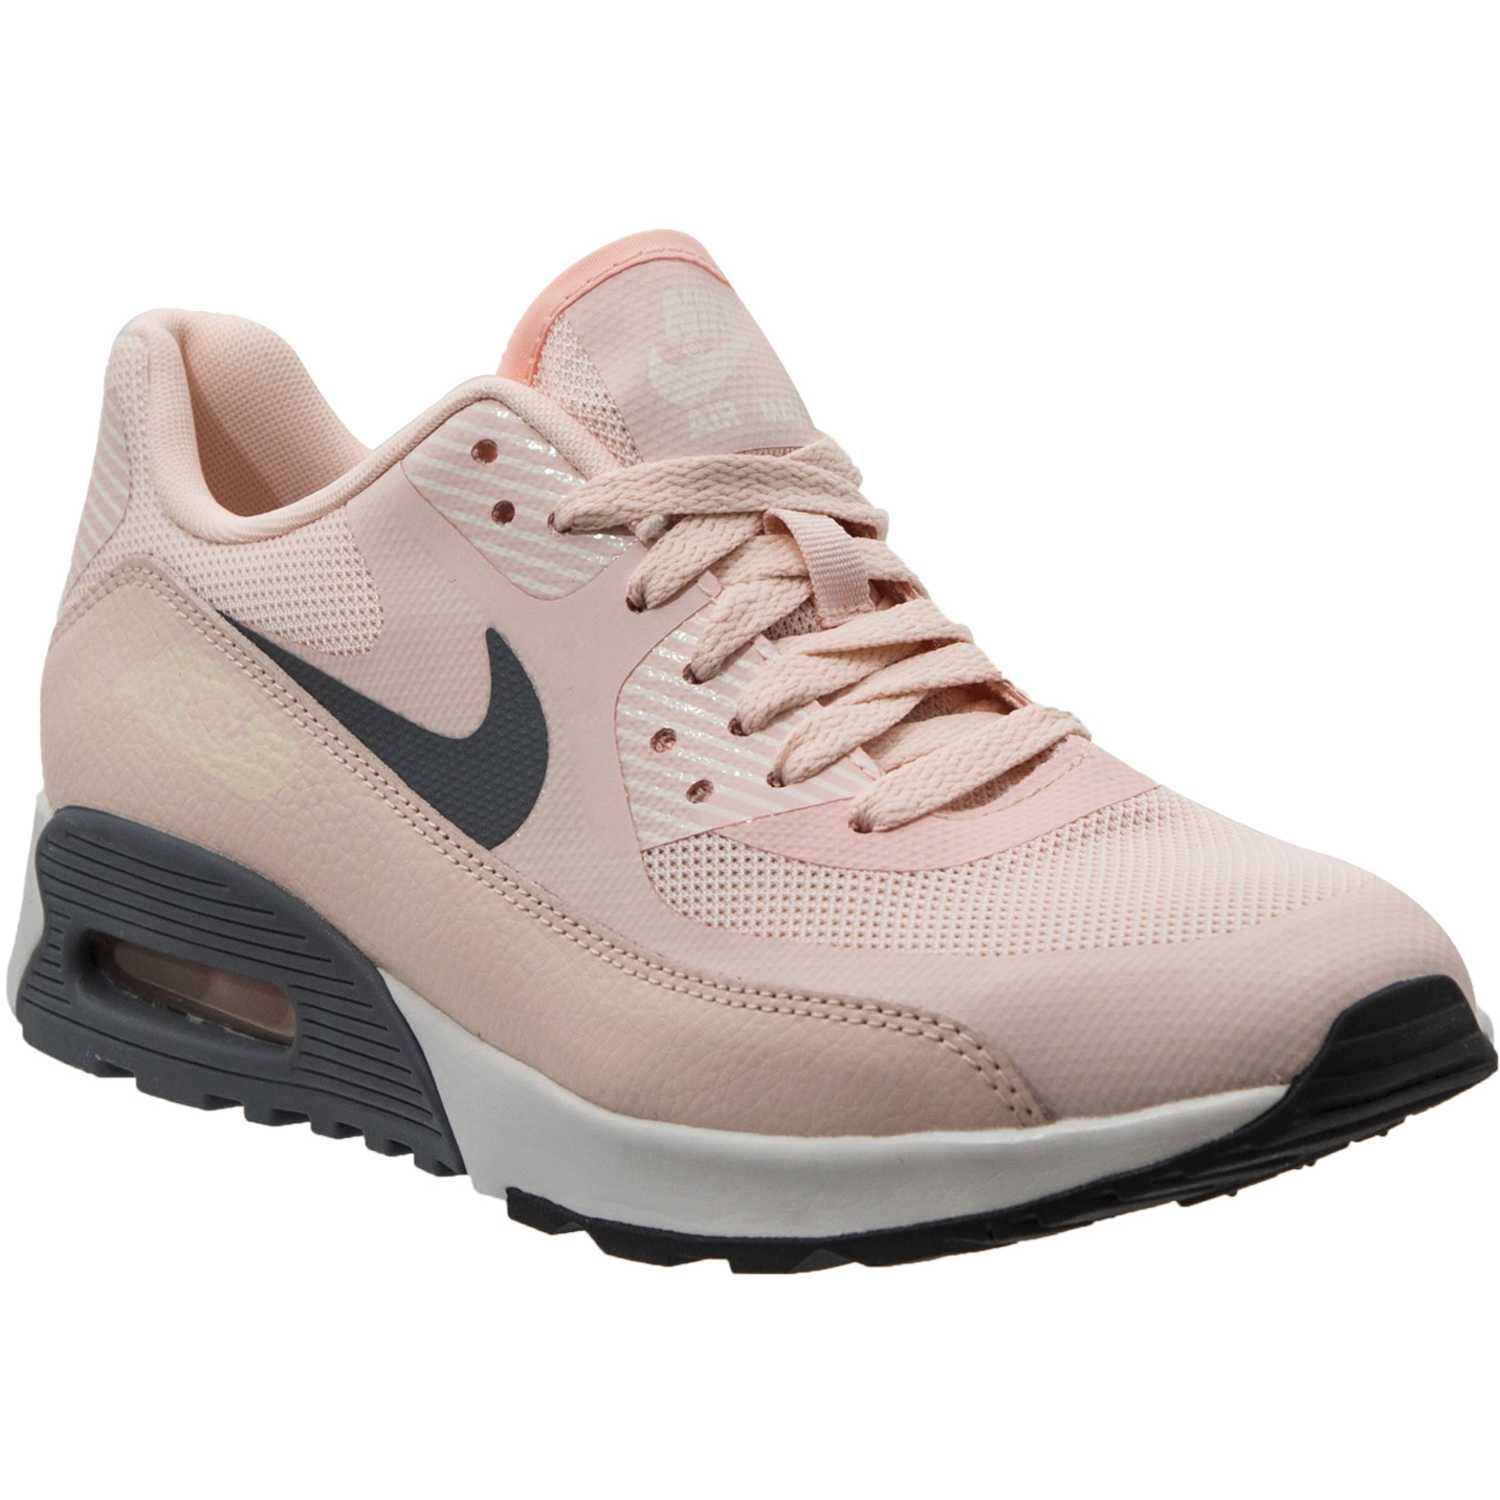 best service c7ae8 adf3a Zapatilla de Mujer Nike Palo rosa wmns air max 90 ultra 2.0